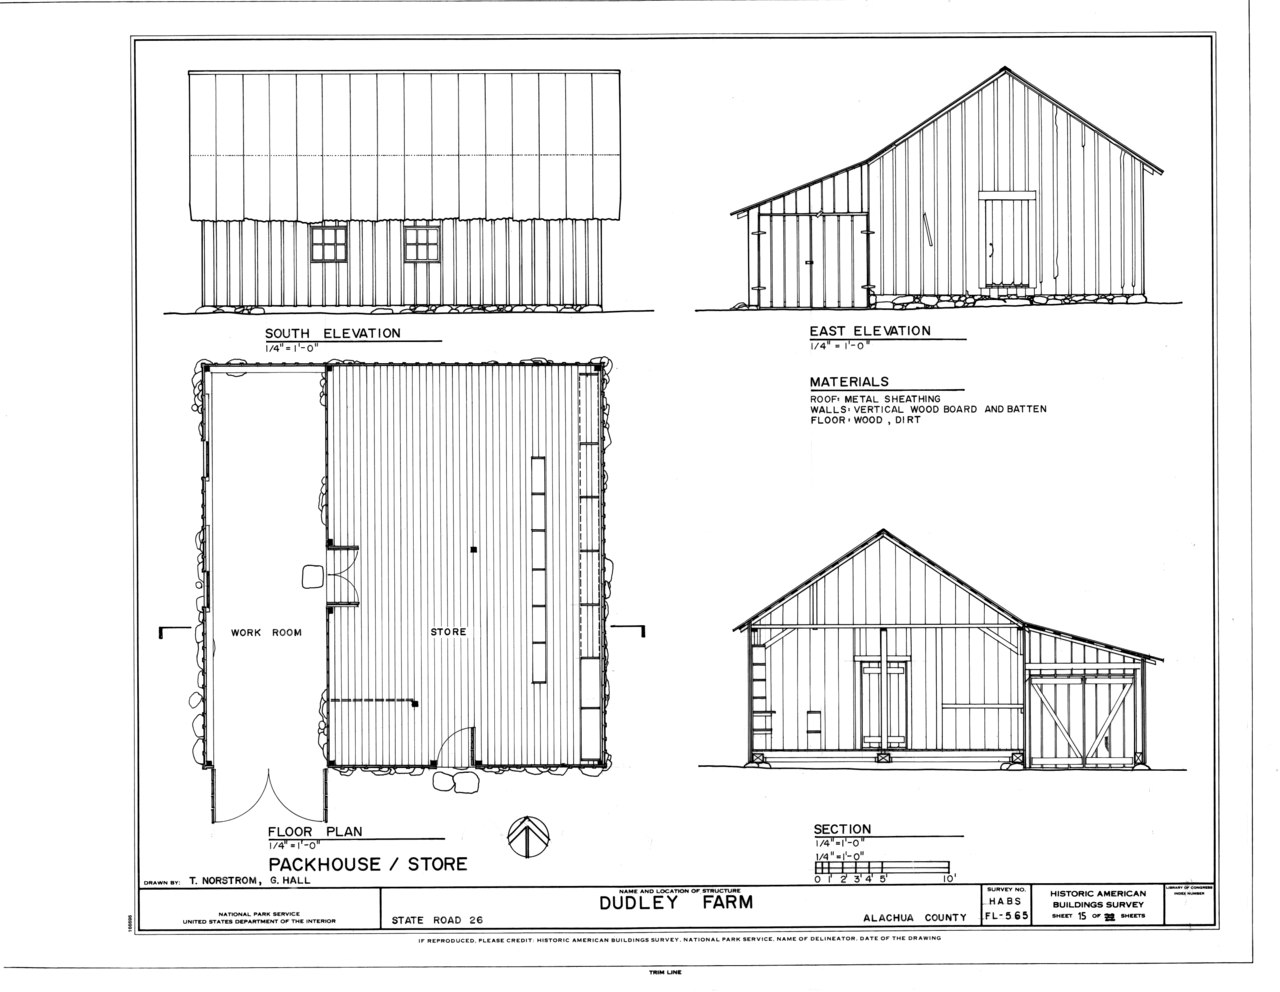 File Packhouse Storehouse Elevations Floor Plan And